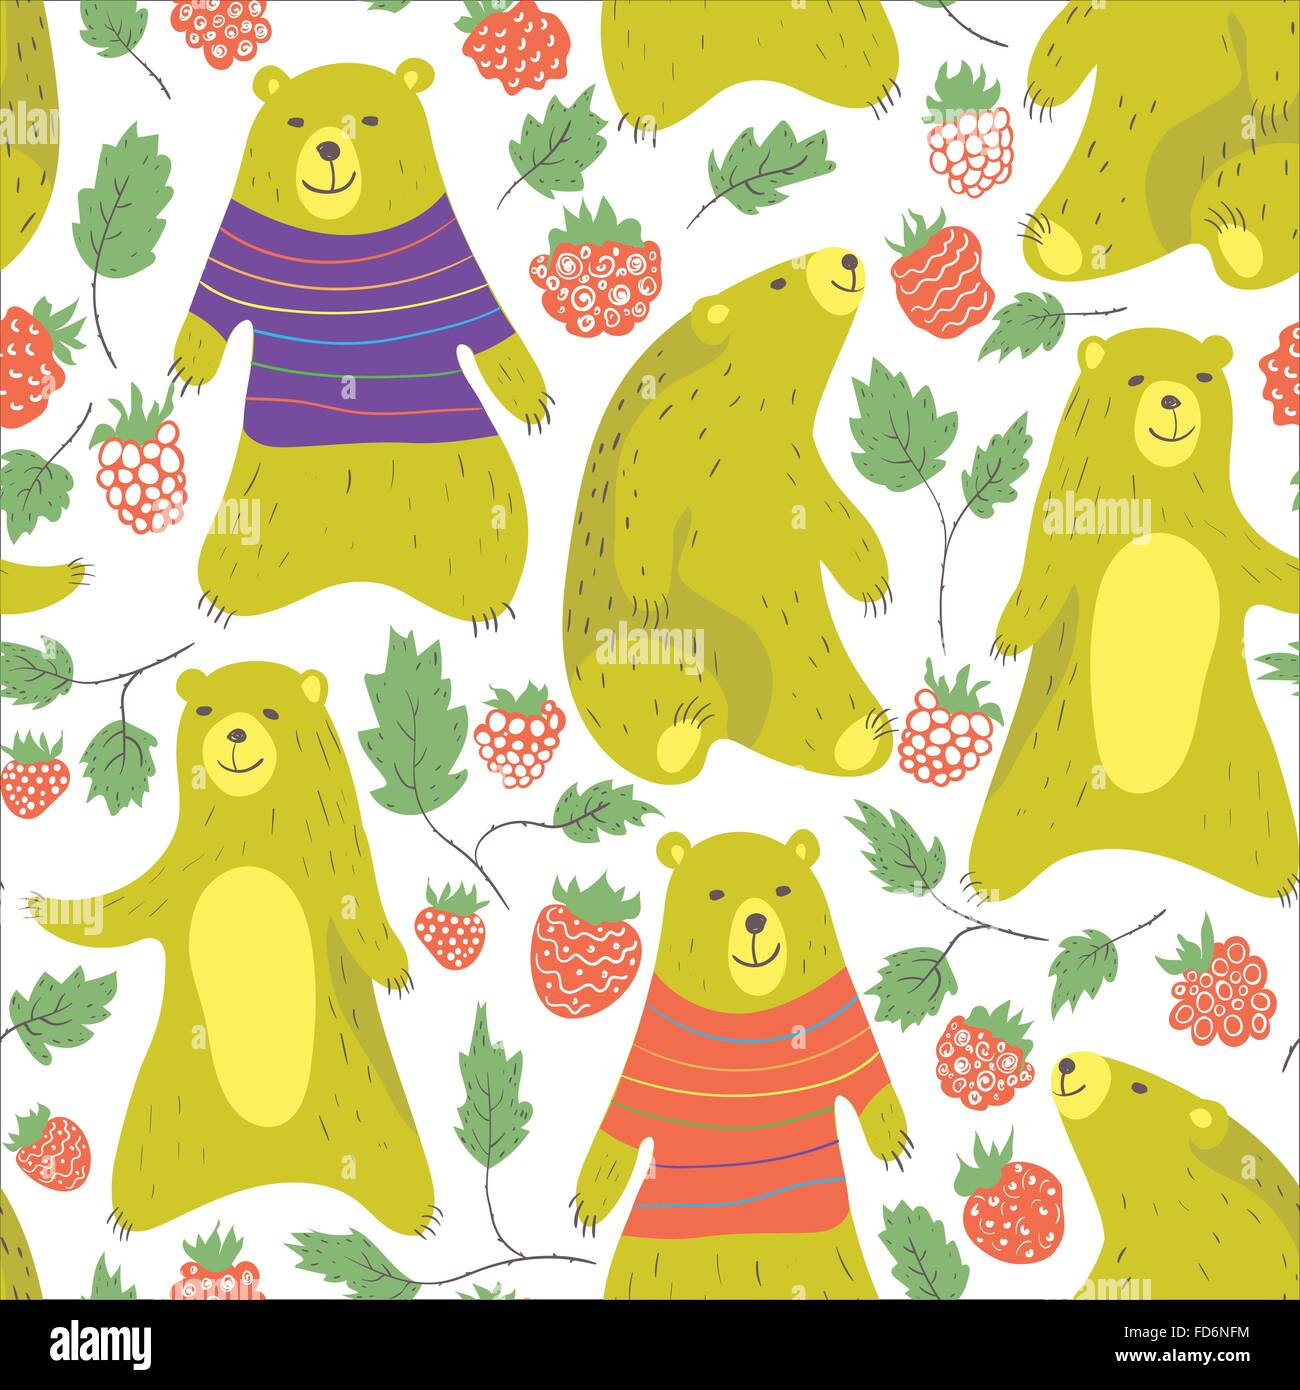 Cute bear and raspberry seamless pattern in cartoon style. Bear in sweater.Vector illustration. - Stock Vector